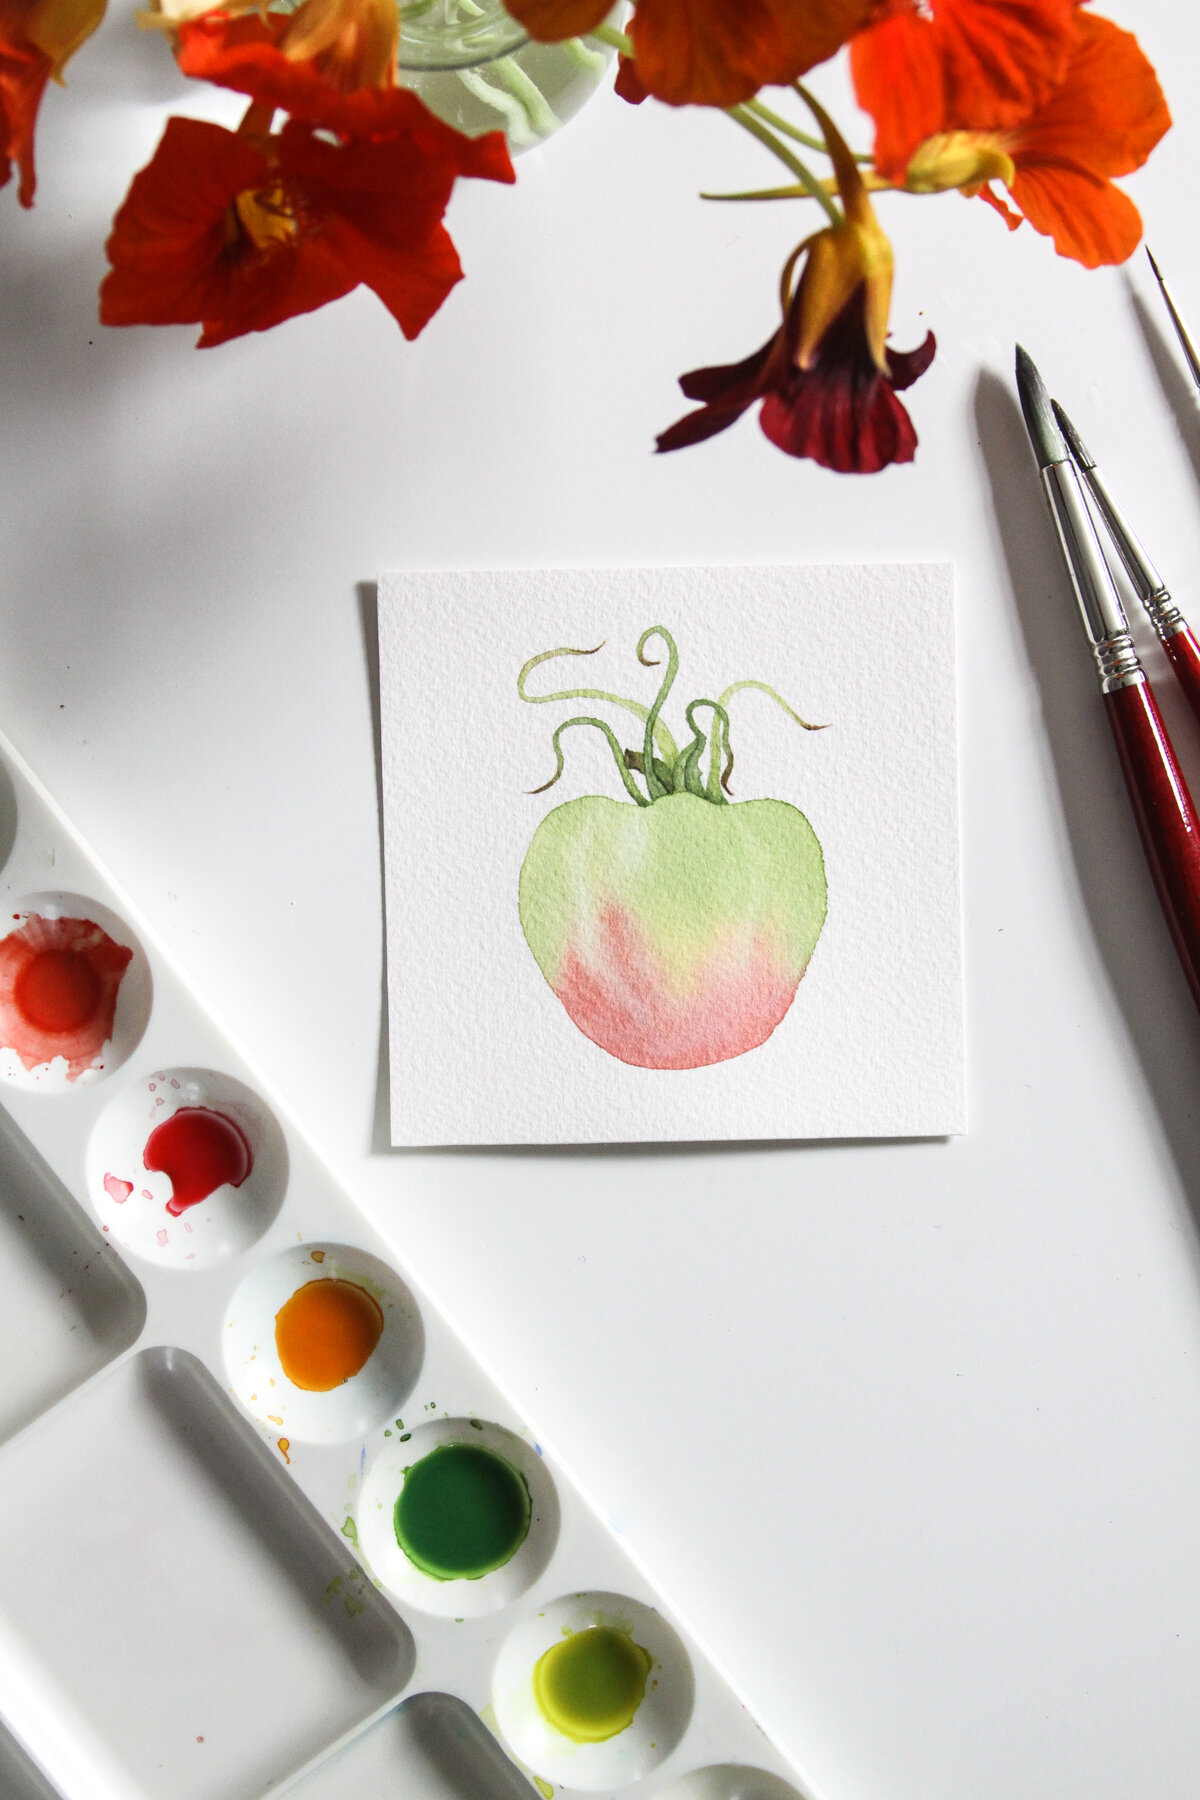 A Watercolor Painting of a Green and Red Tomato by Anne Butera